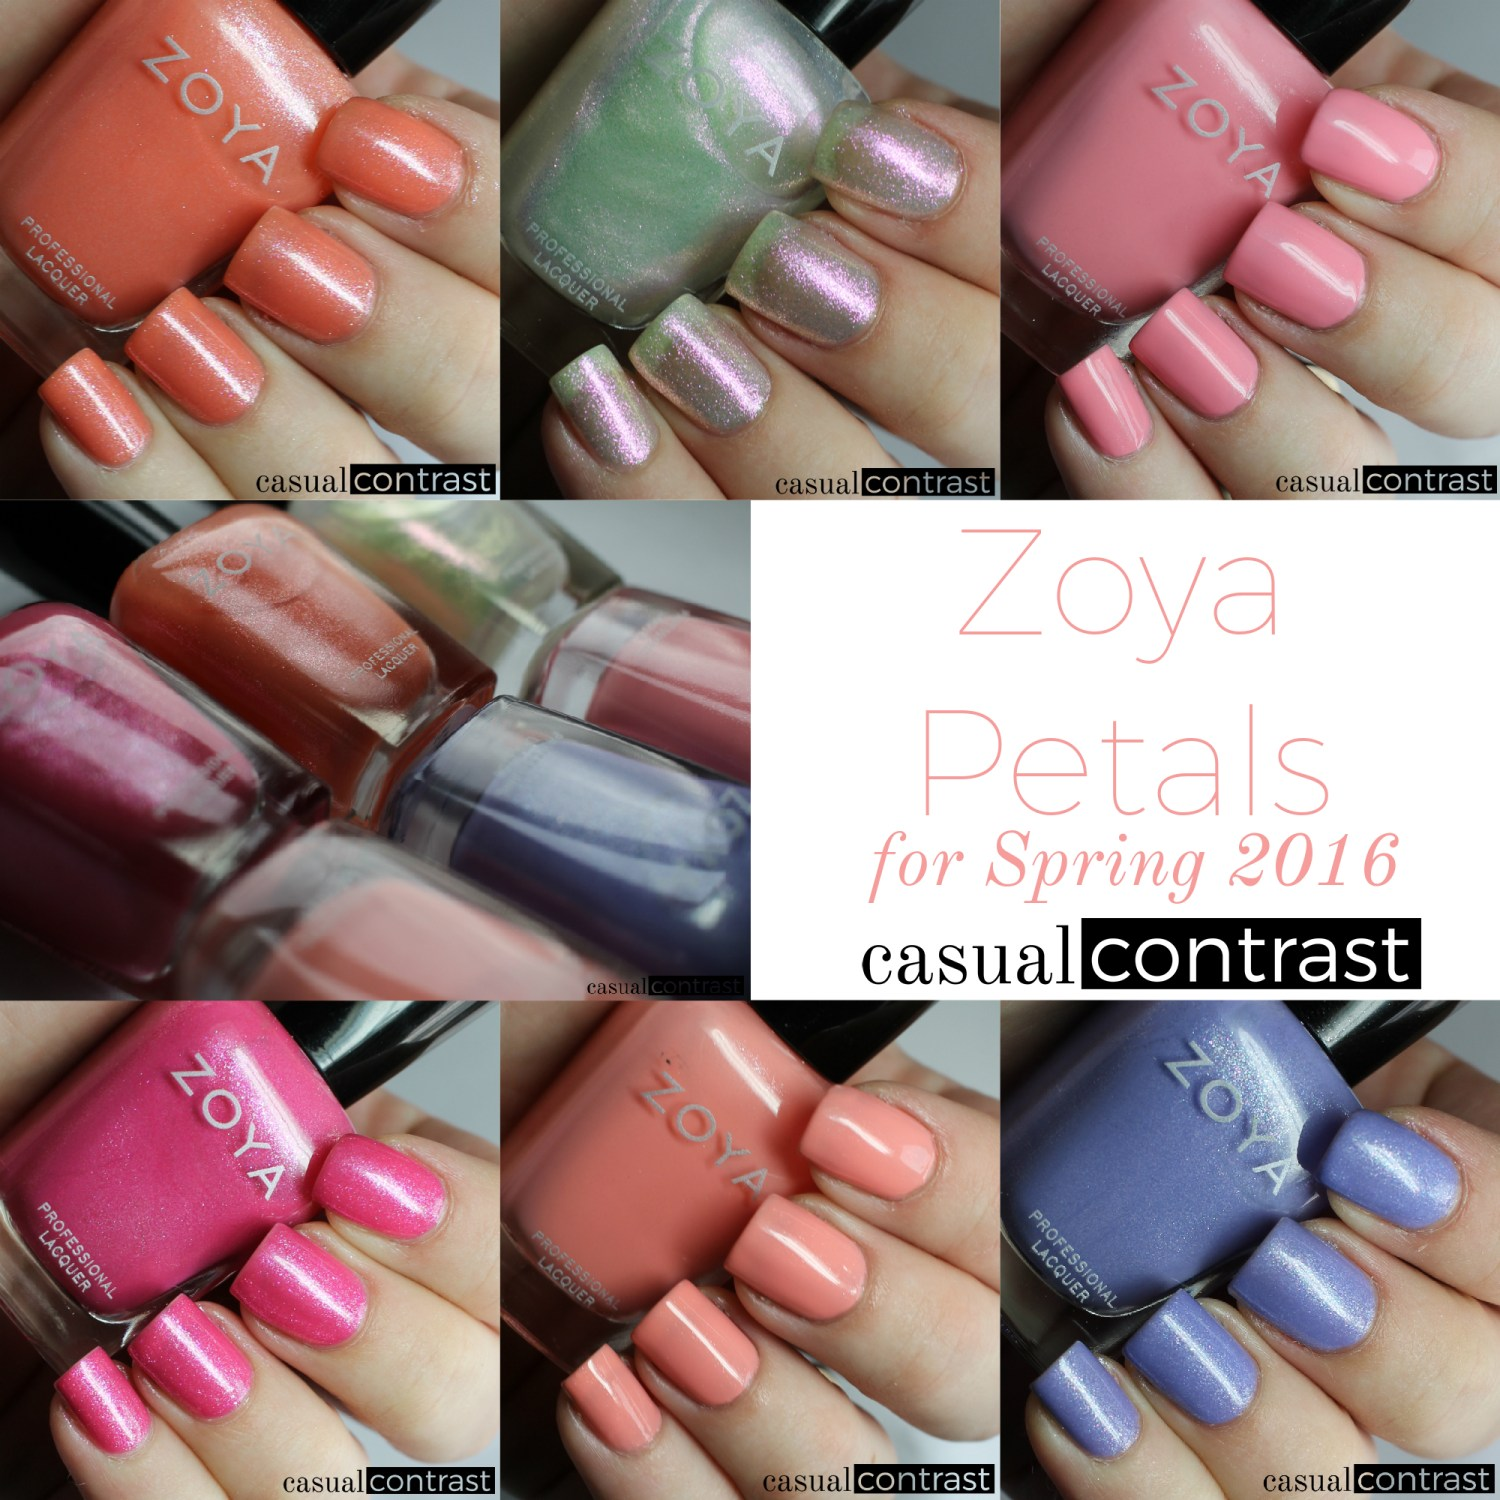 Image of collage of Zoya Petals Collection